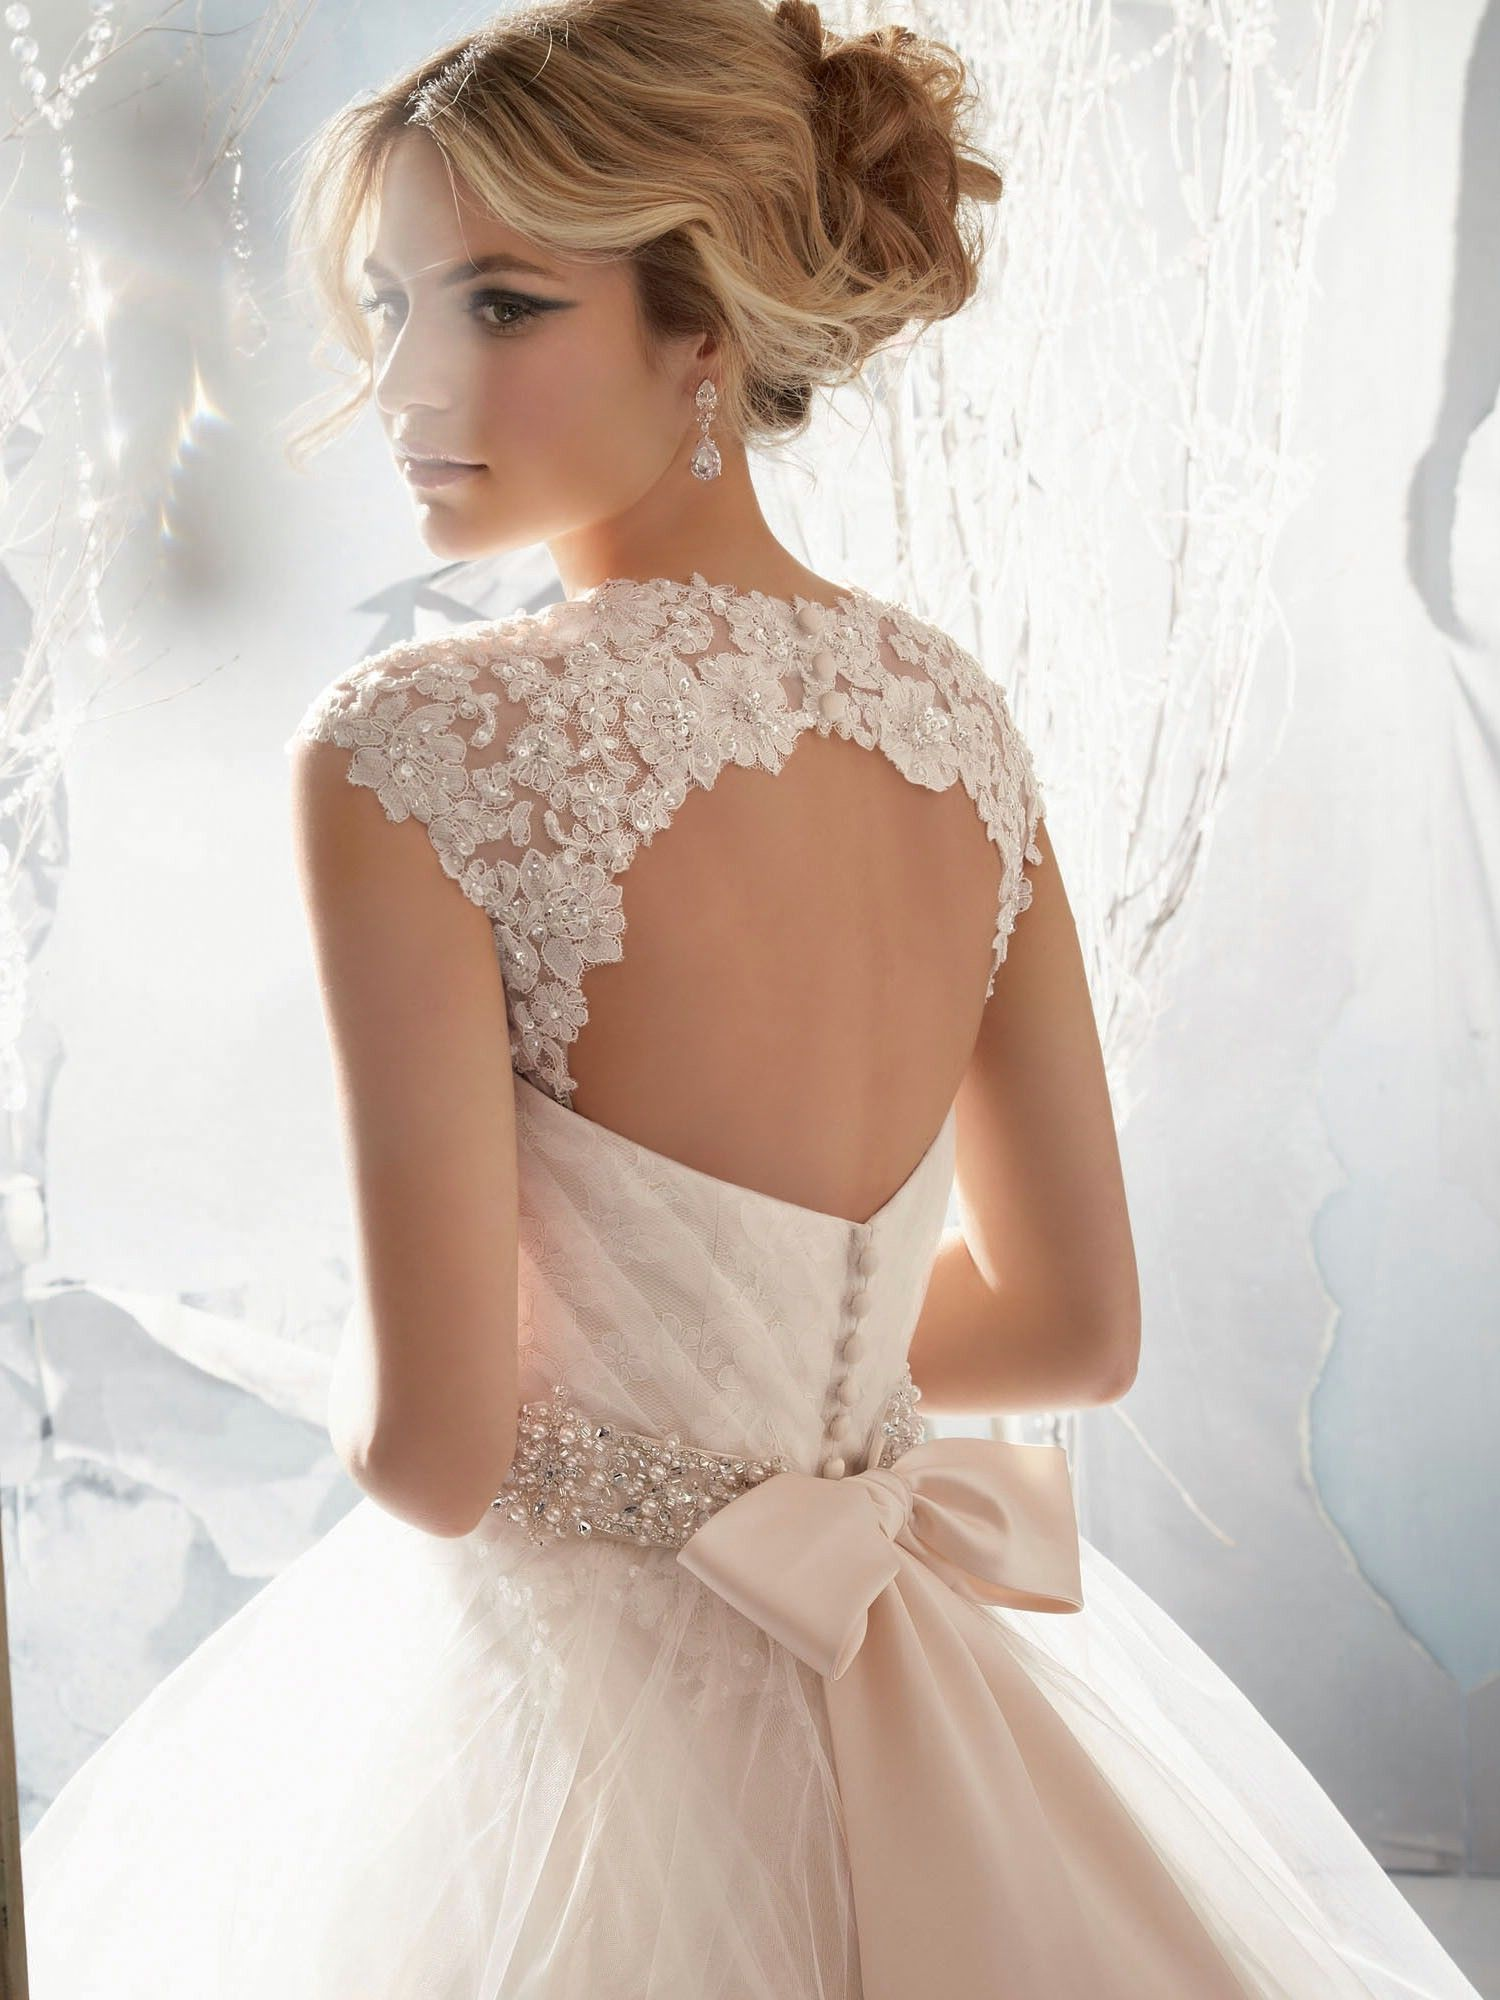 Found on weddingbee adding straps match with front picture for